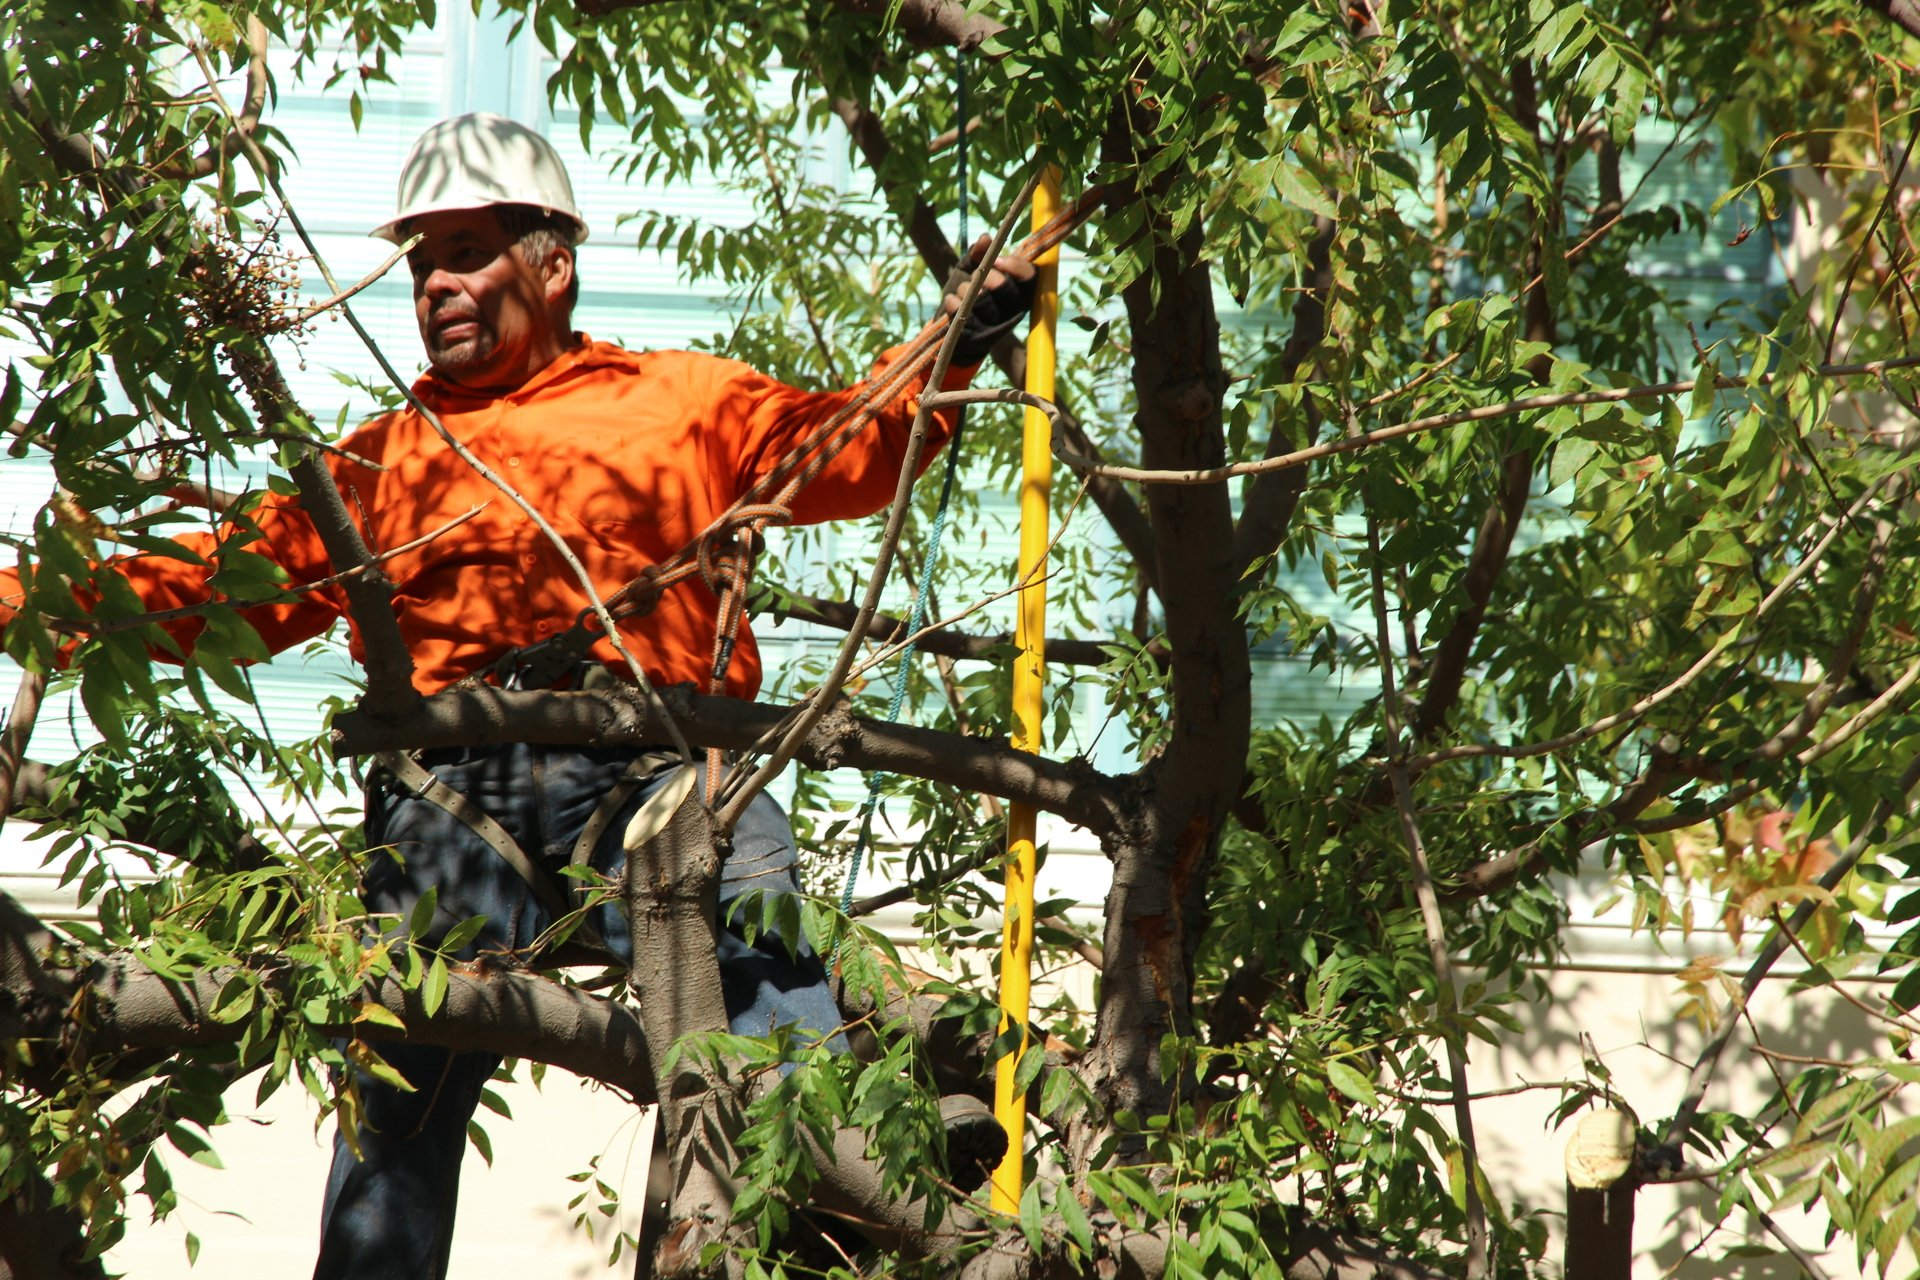 Reasons to Hire a Tree Removal Service